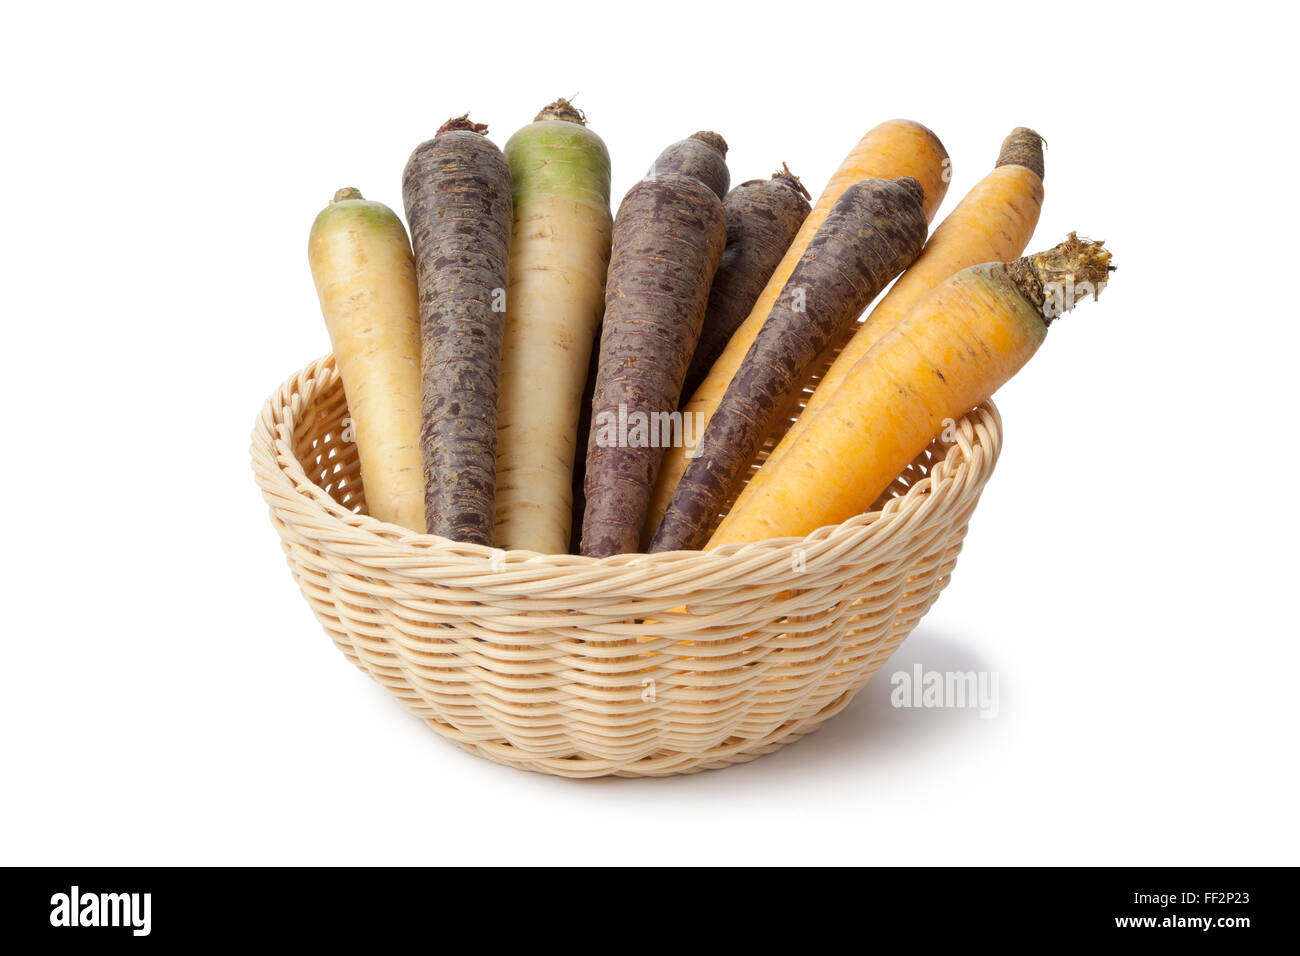 Fresh raw black, white and yellow carrots in a basket on white background - Stock Image